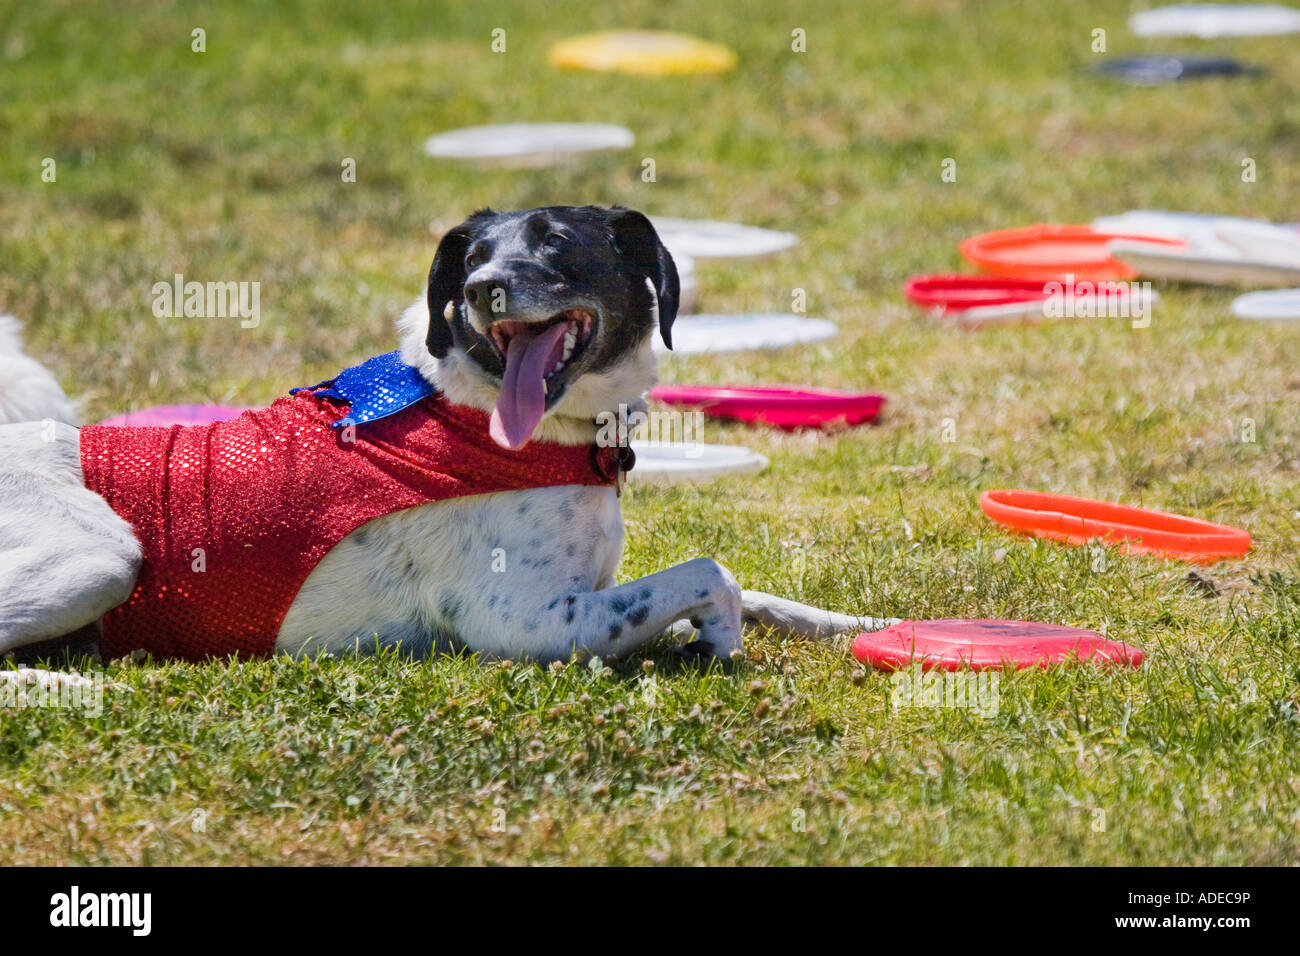 Happy dog resting on the grass and panting with many Frisbees lying all around it - Stock Image